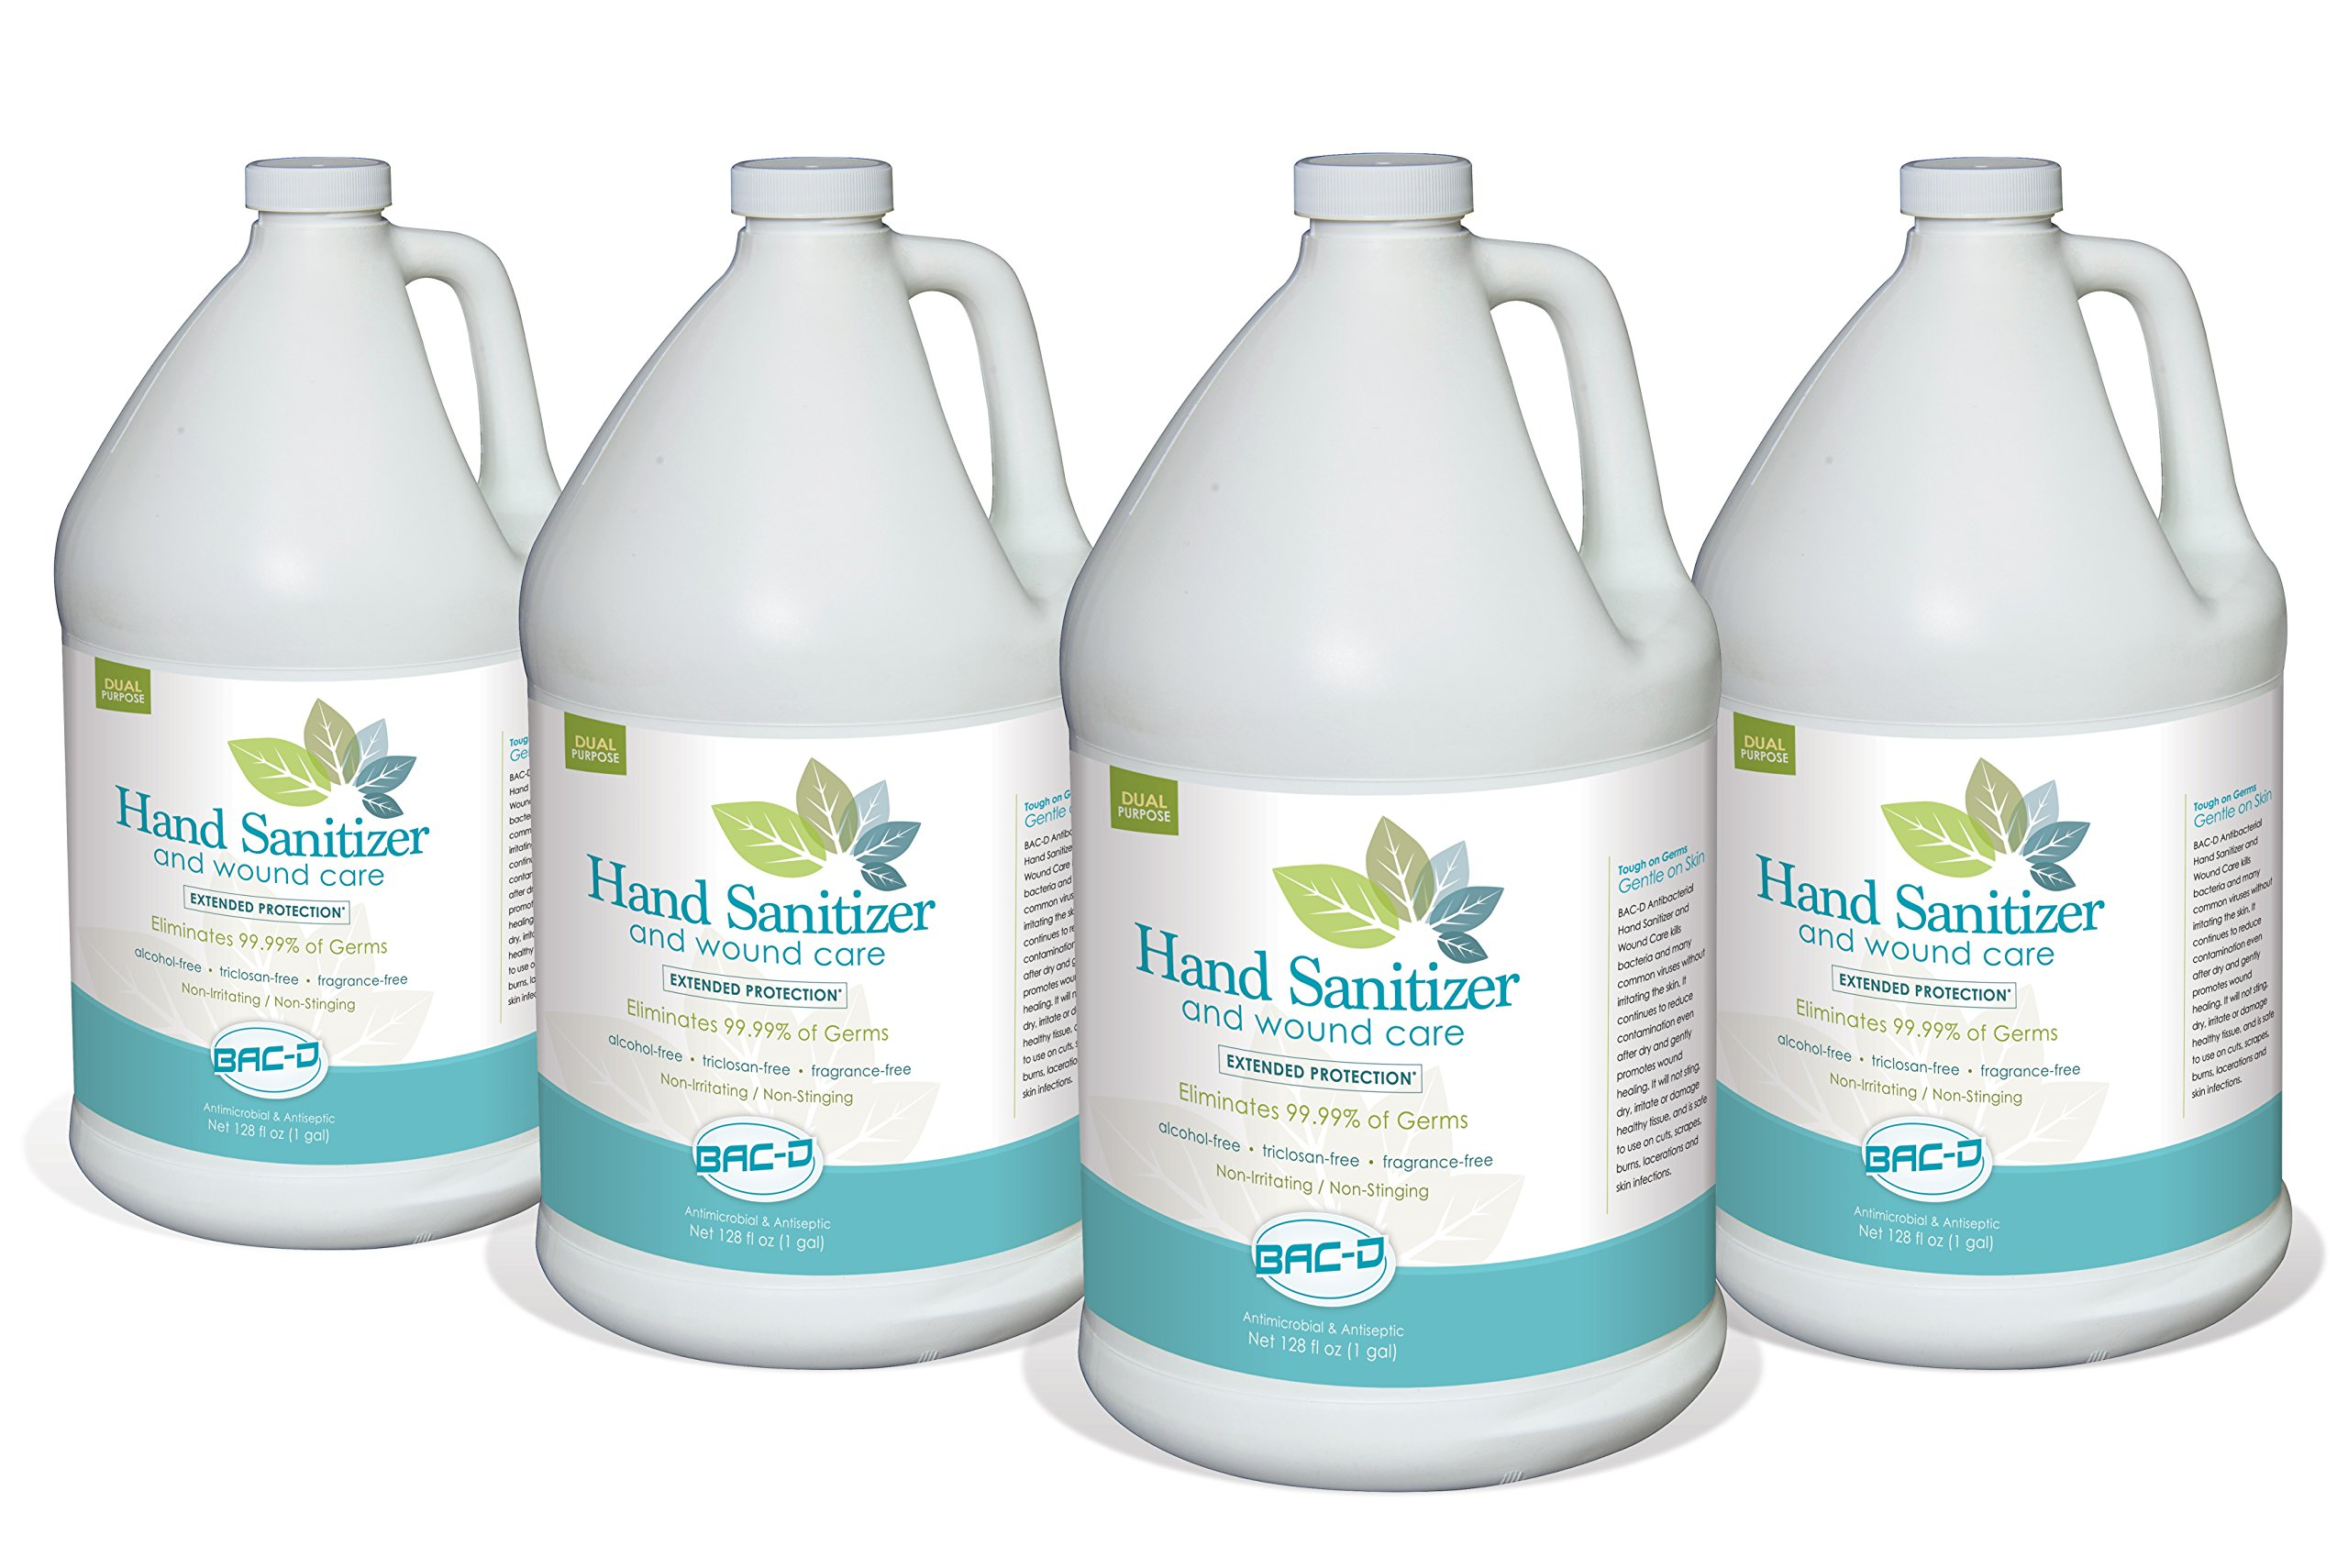 BAC-D 635 Alcohol Free Hand Sanitizer and Wound Care, 1 Gallon Refill, 128 oz. (Pack of 4) by BAC-D